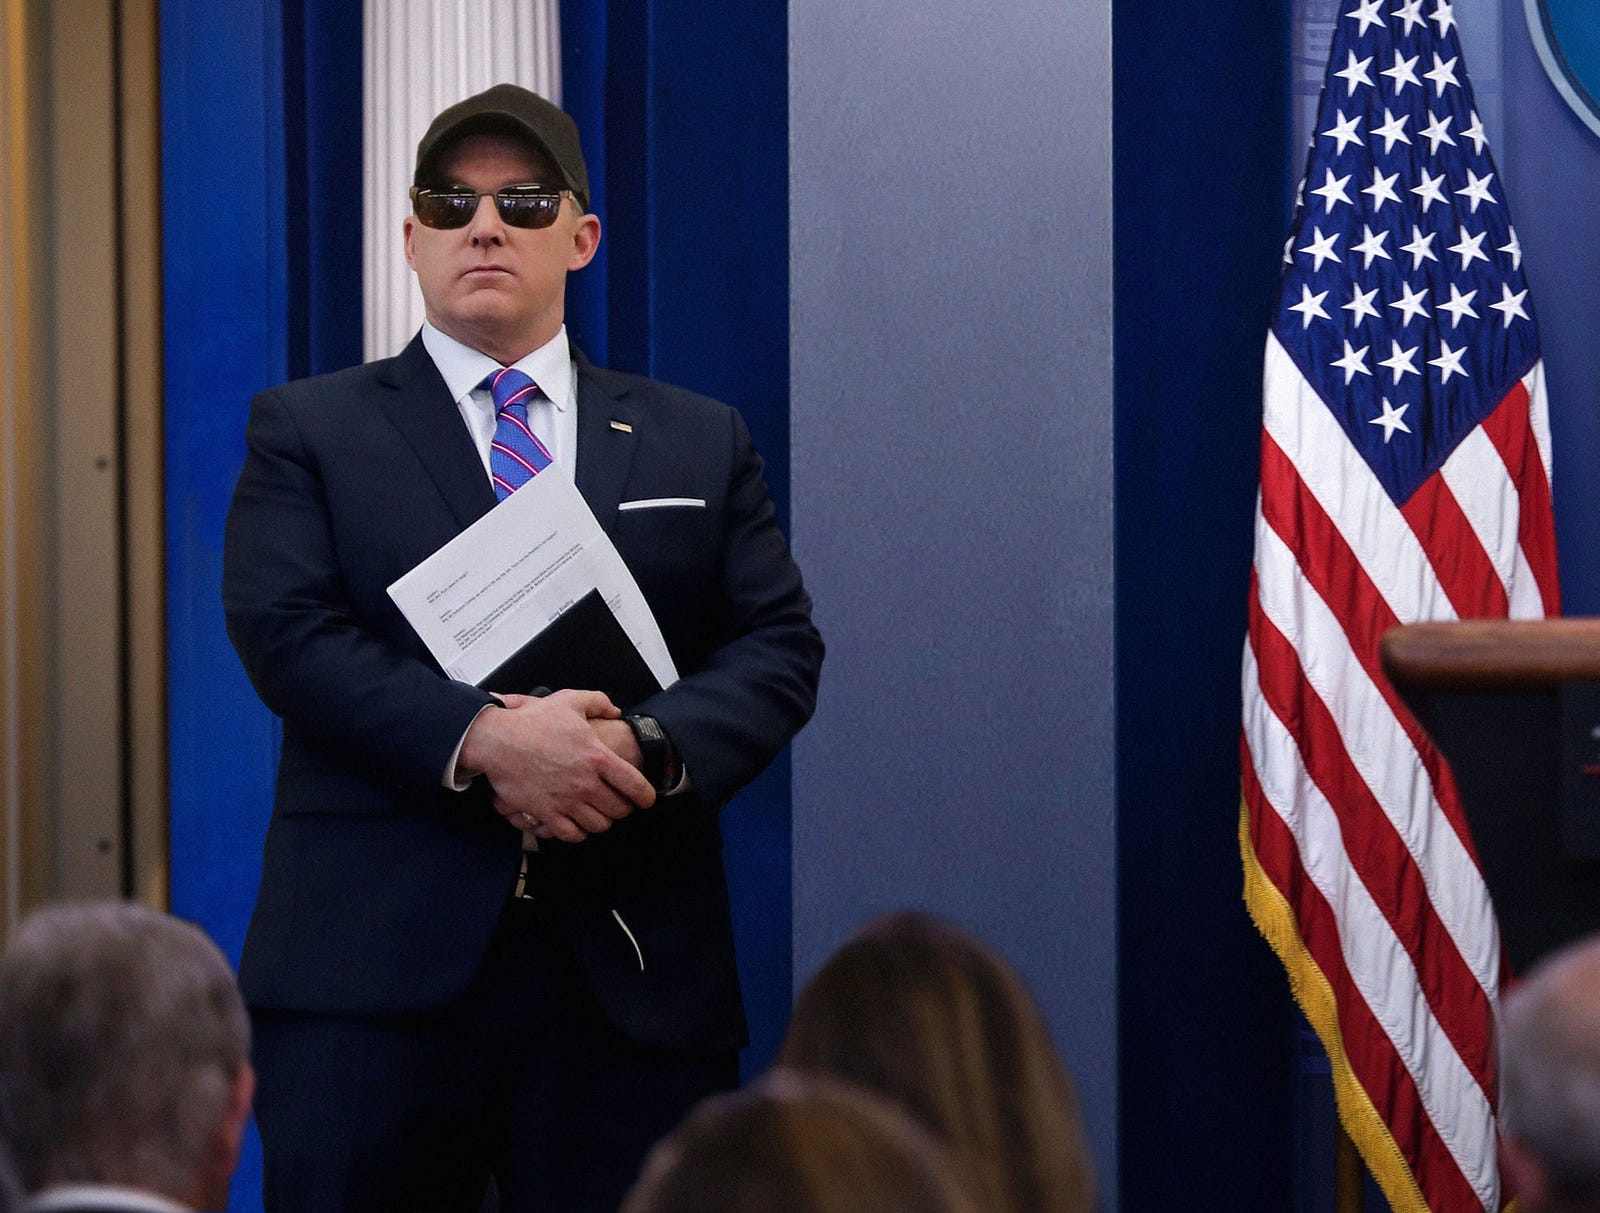 Sean Spicer Walking Around White House In Sunglasses And Baseball Cap To Avoid Press